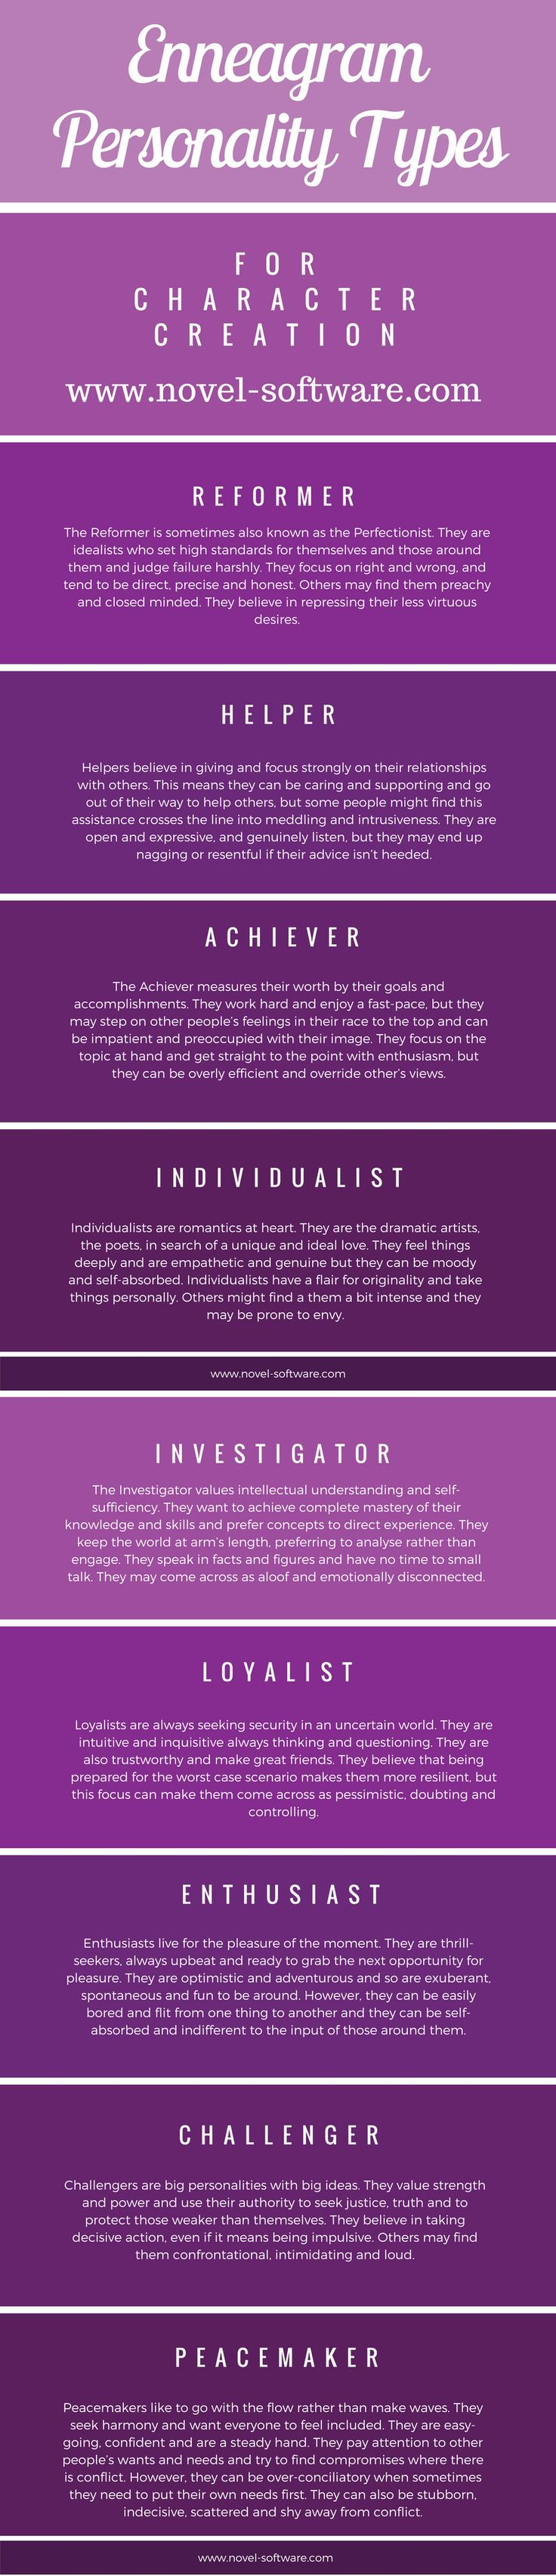 Succinct summaries of Enneagram personality types to